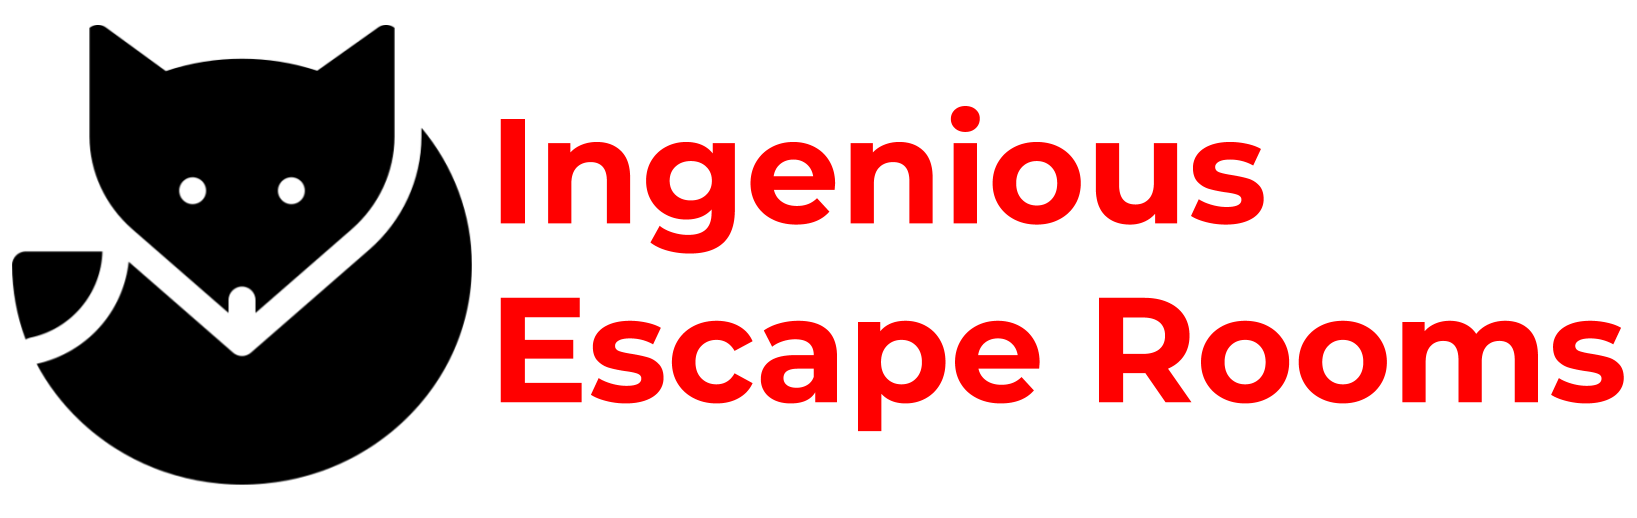 Ingenious Escape Rooms |   Placeholder Image